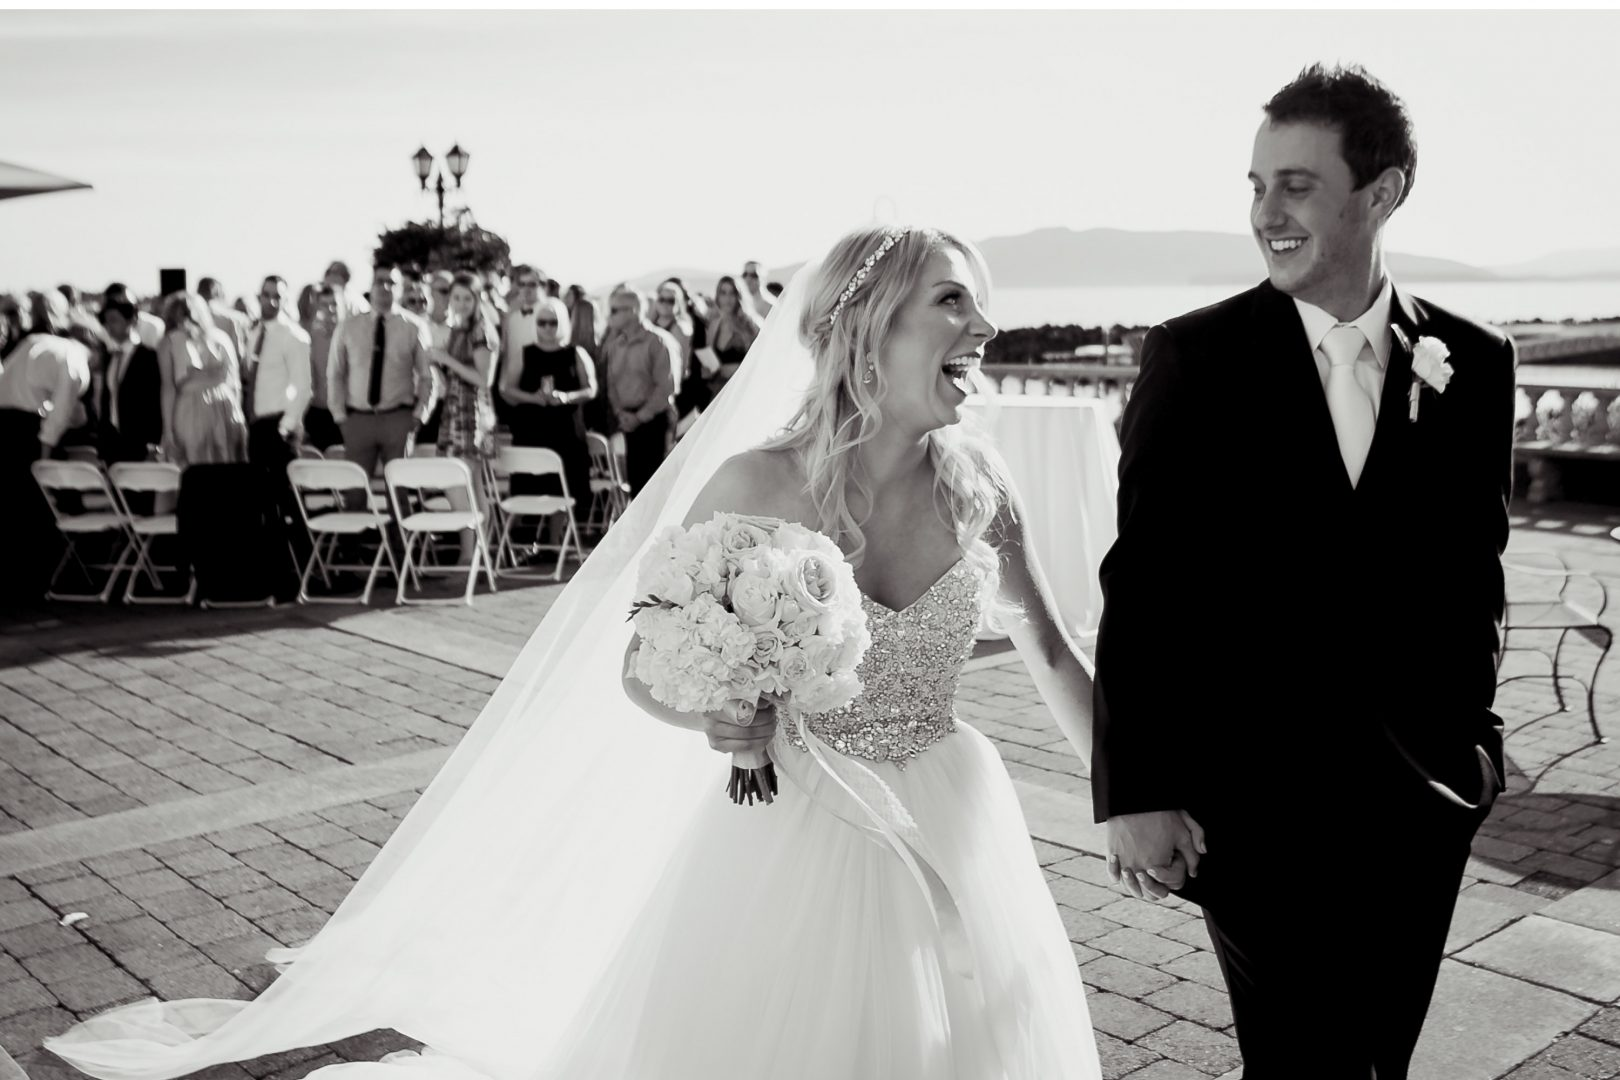 bellwether wedding photo inspiration after the ceremony photographer